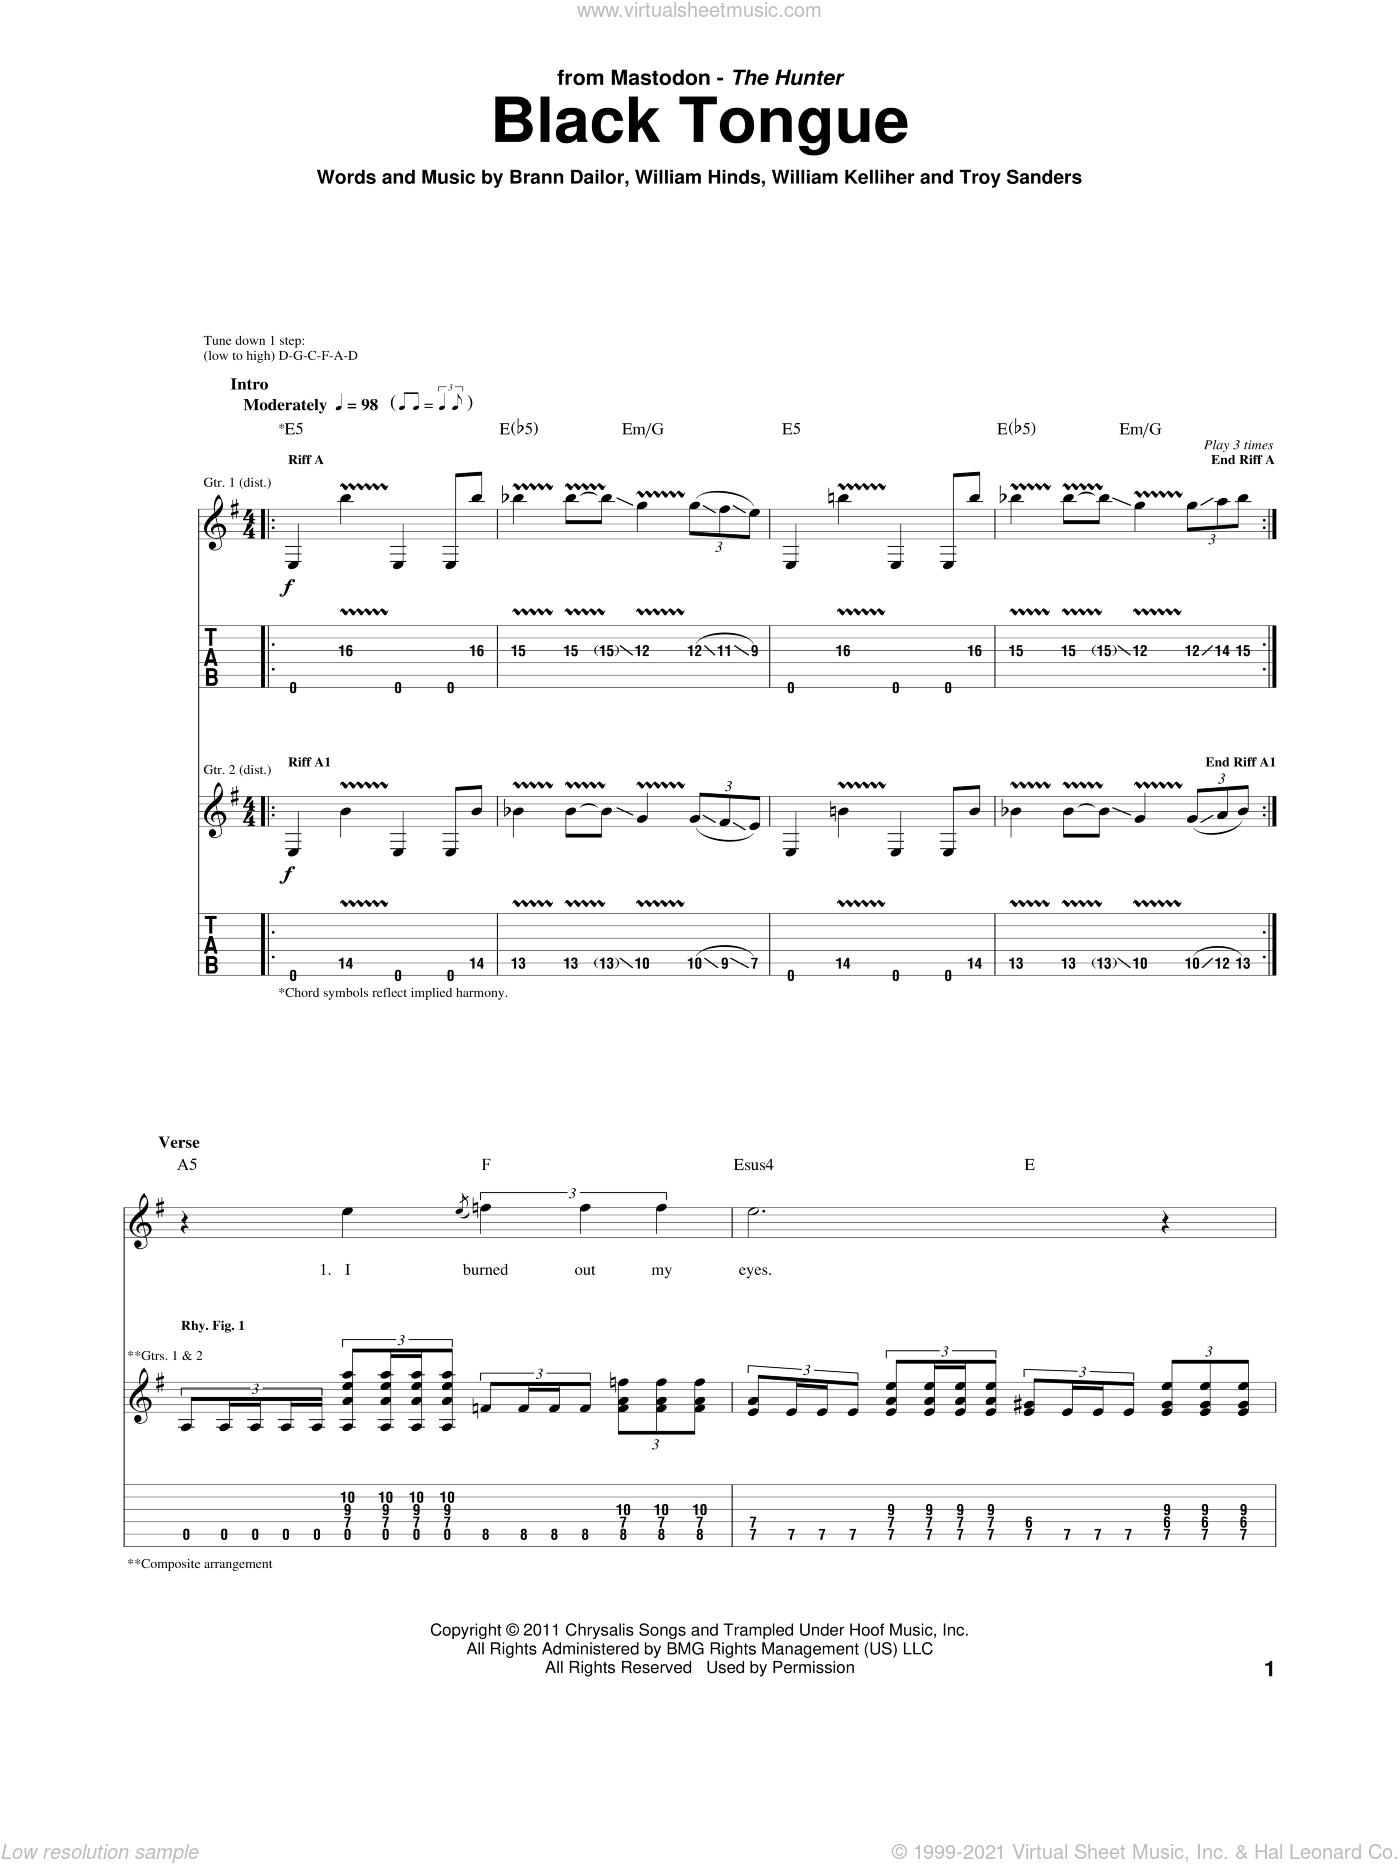 Black Tongue sheet music for guitar (tablature) by Mastodon, Brann Dailor, Troy Sanders, William Hinds and William Kelliher, intermediate